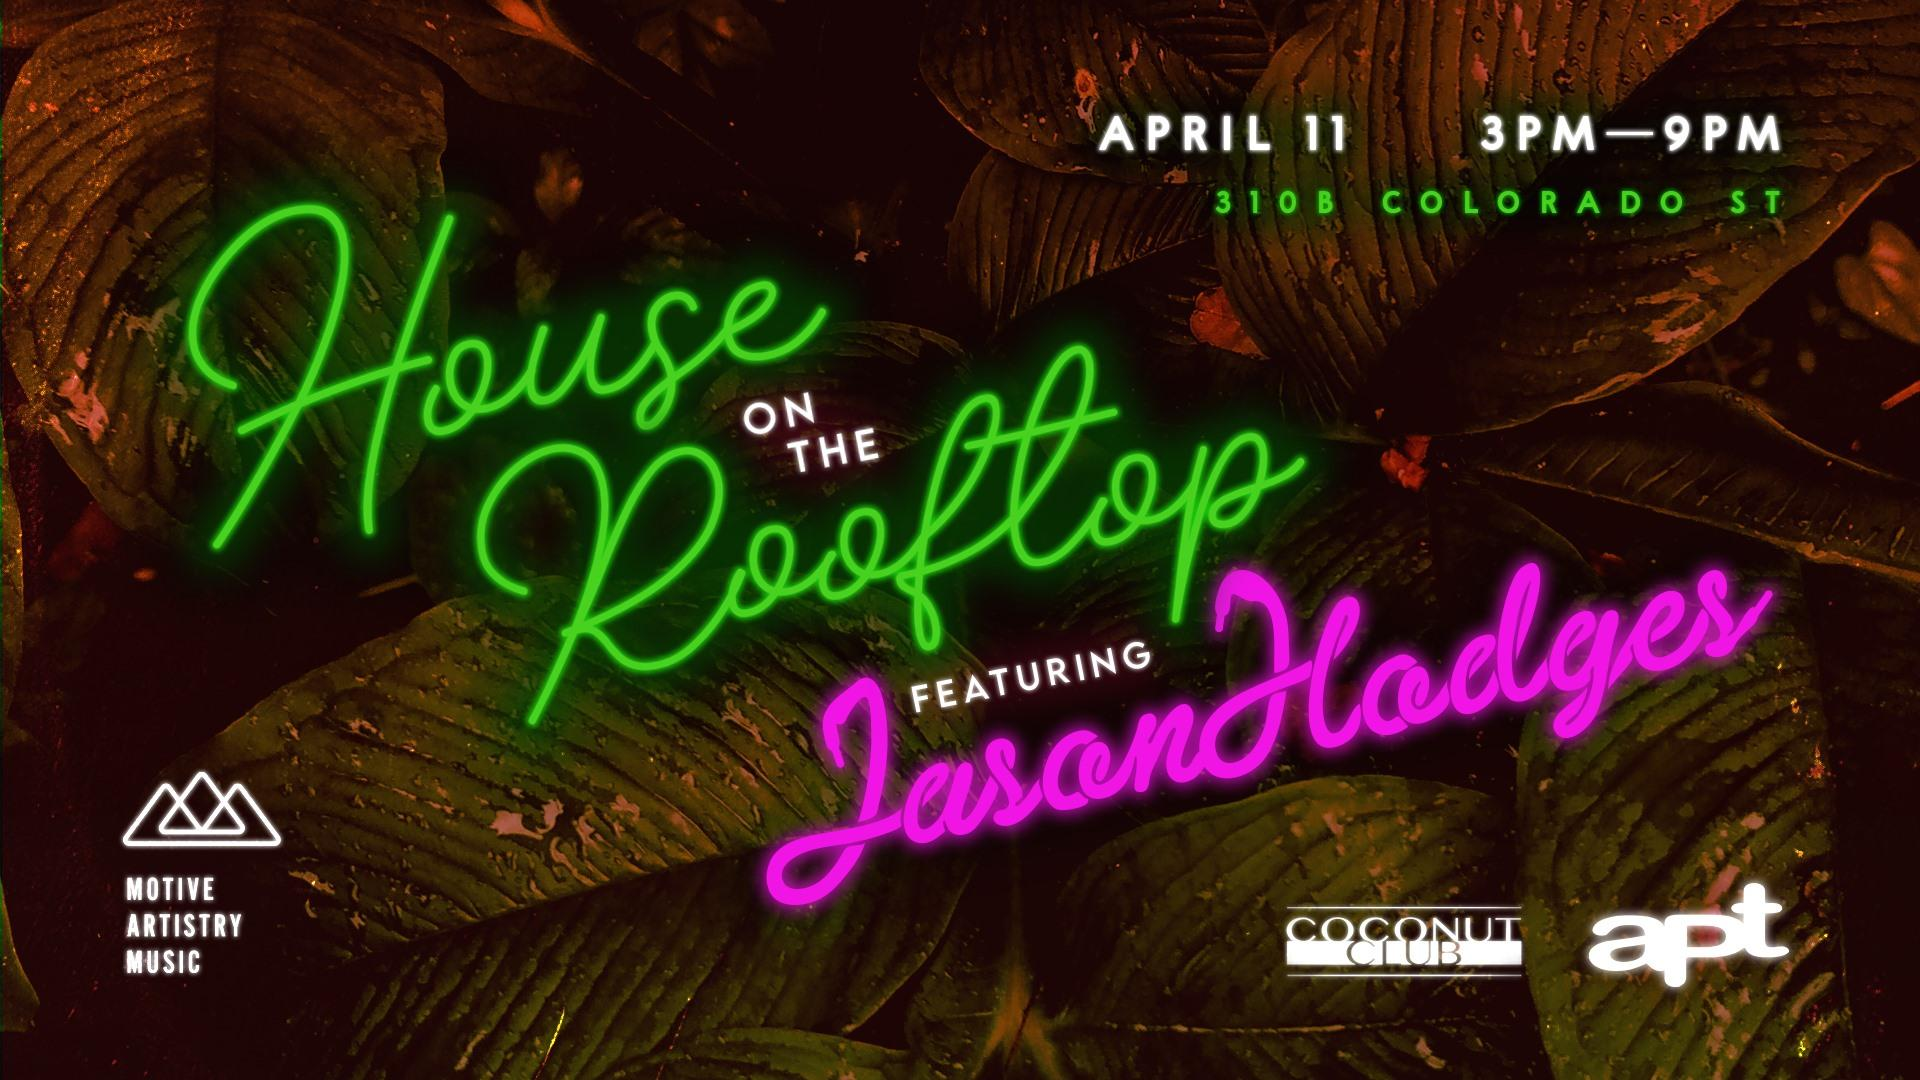 House On the Rooftop Day Party Ft Jason Hodges